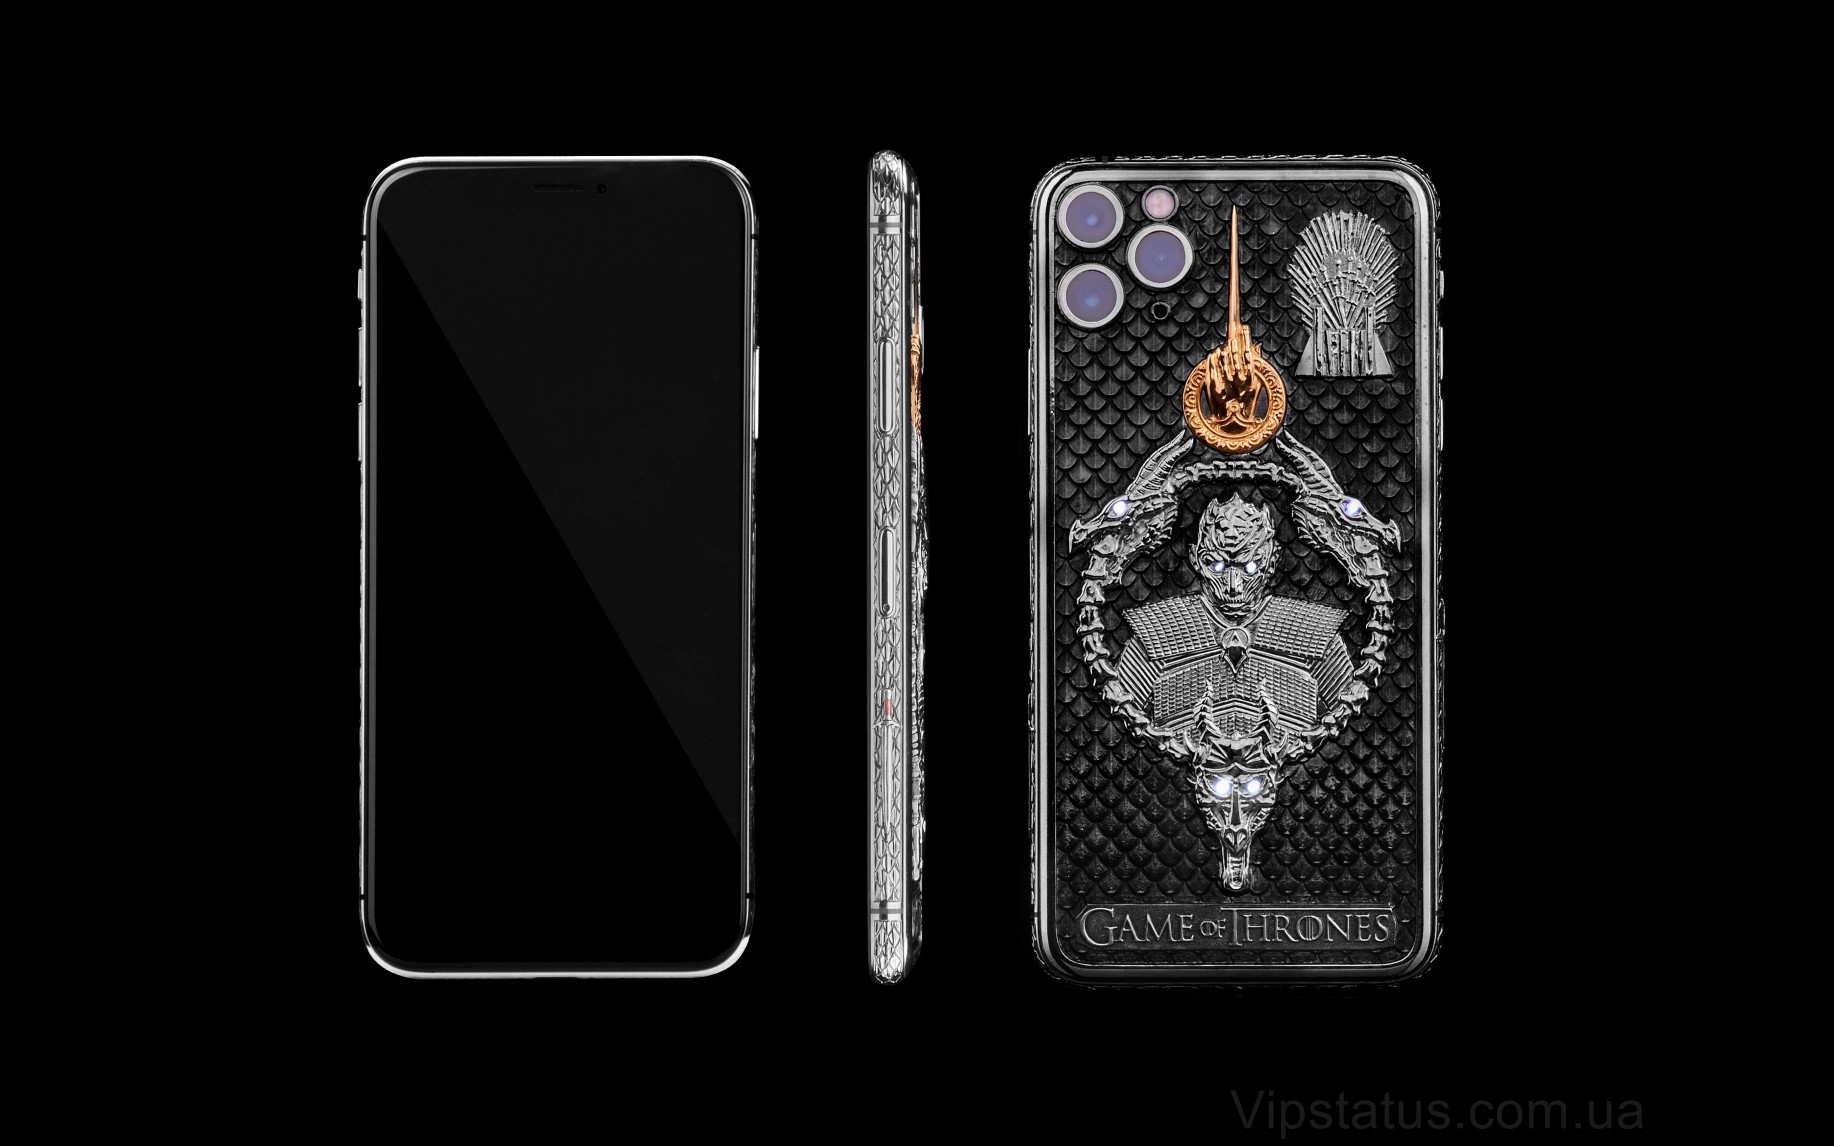 Elite Game of Thrones IPHONE 12 PRO MAX 512 GB Game of Thrones IPHONE 12 PRO MAX 512 GB image 6